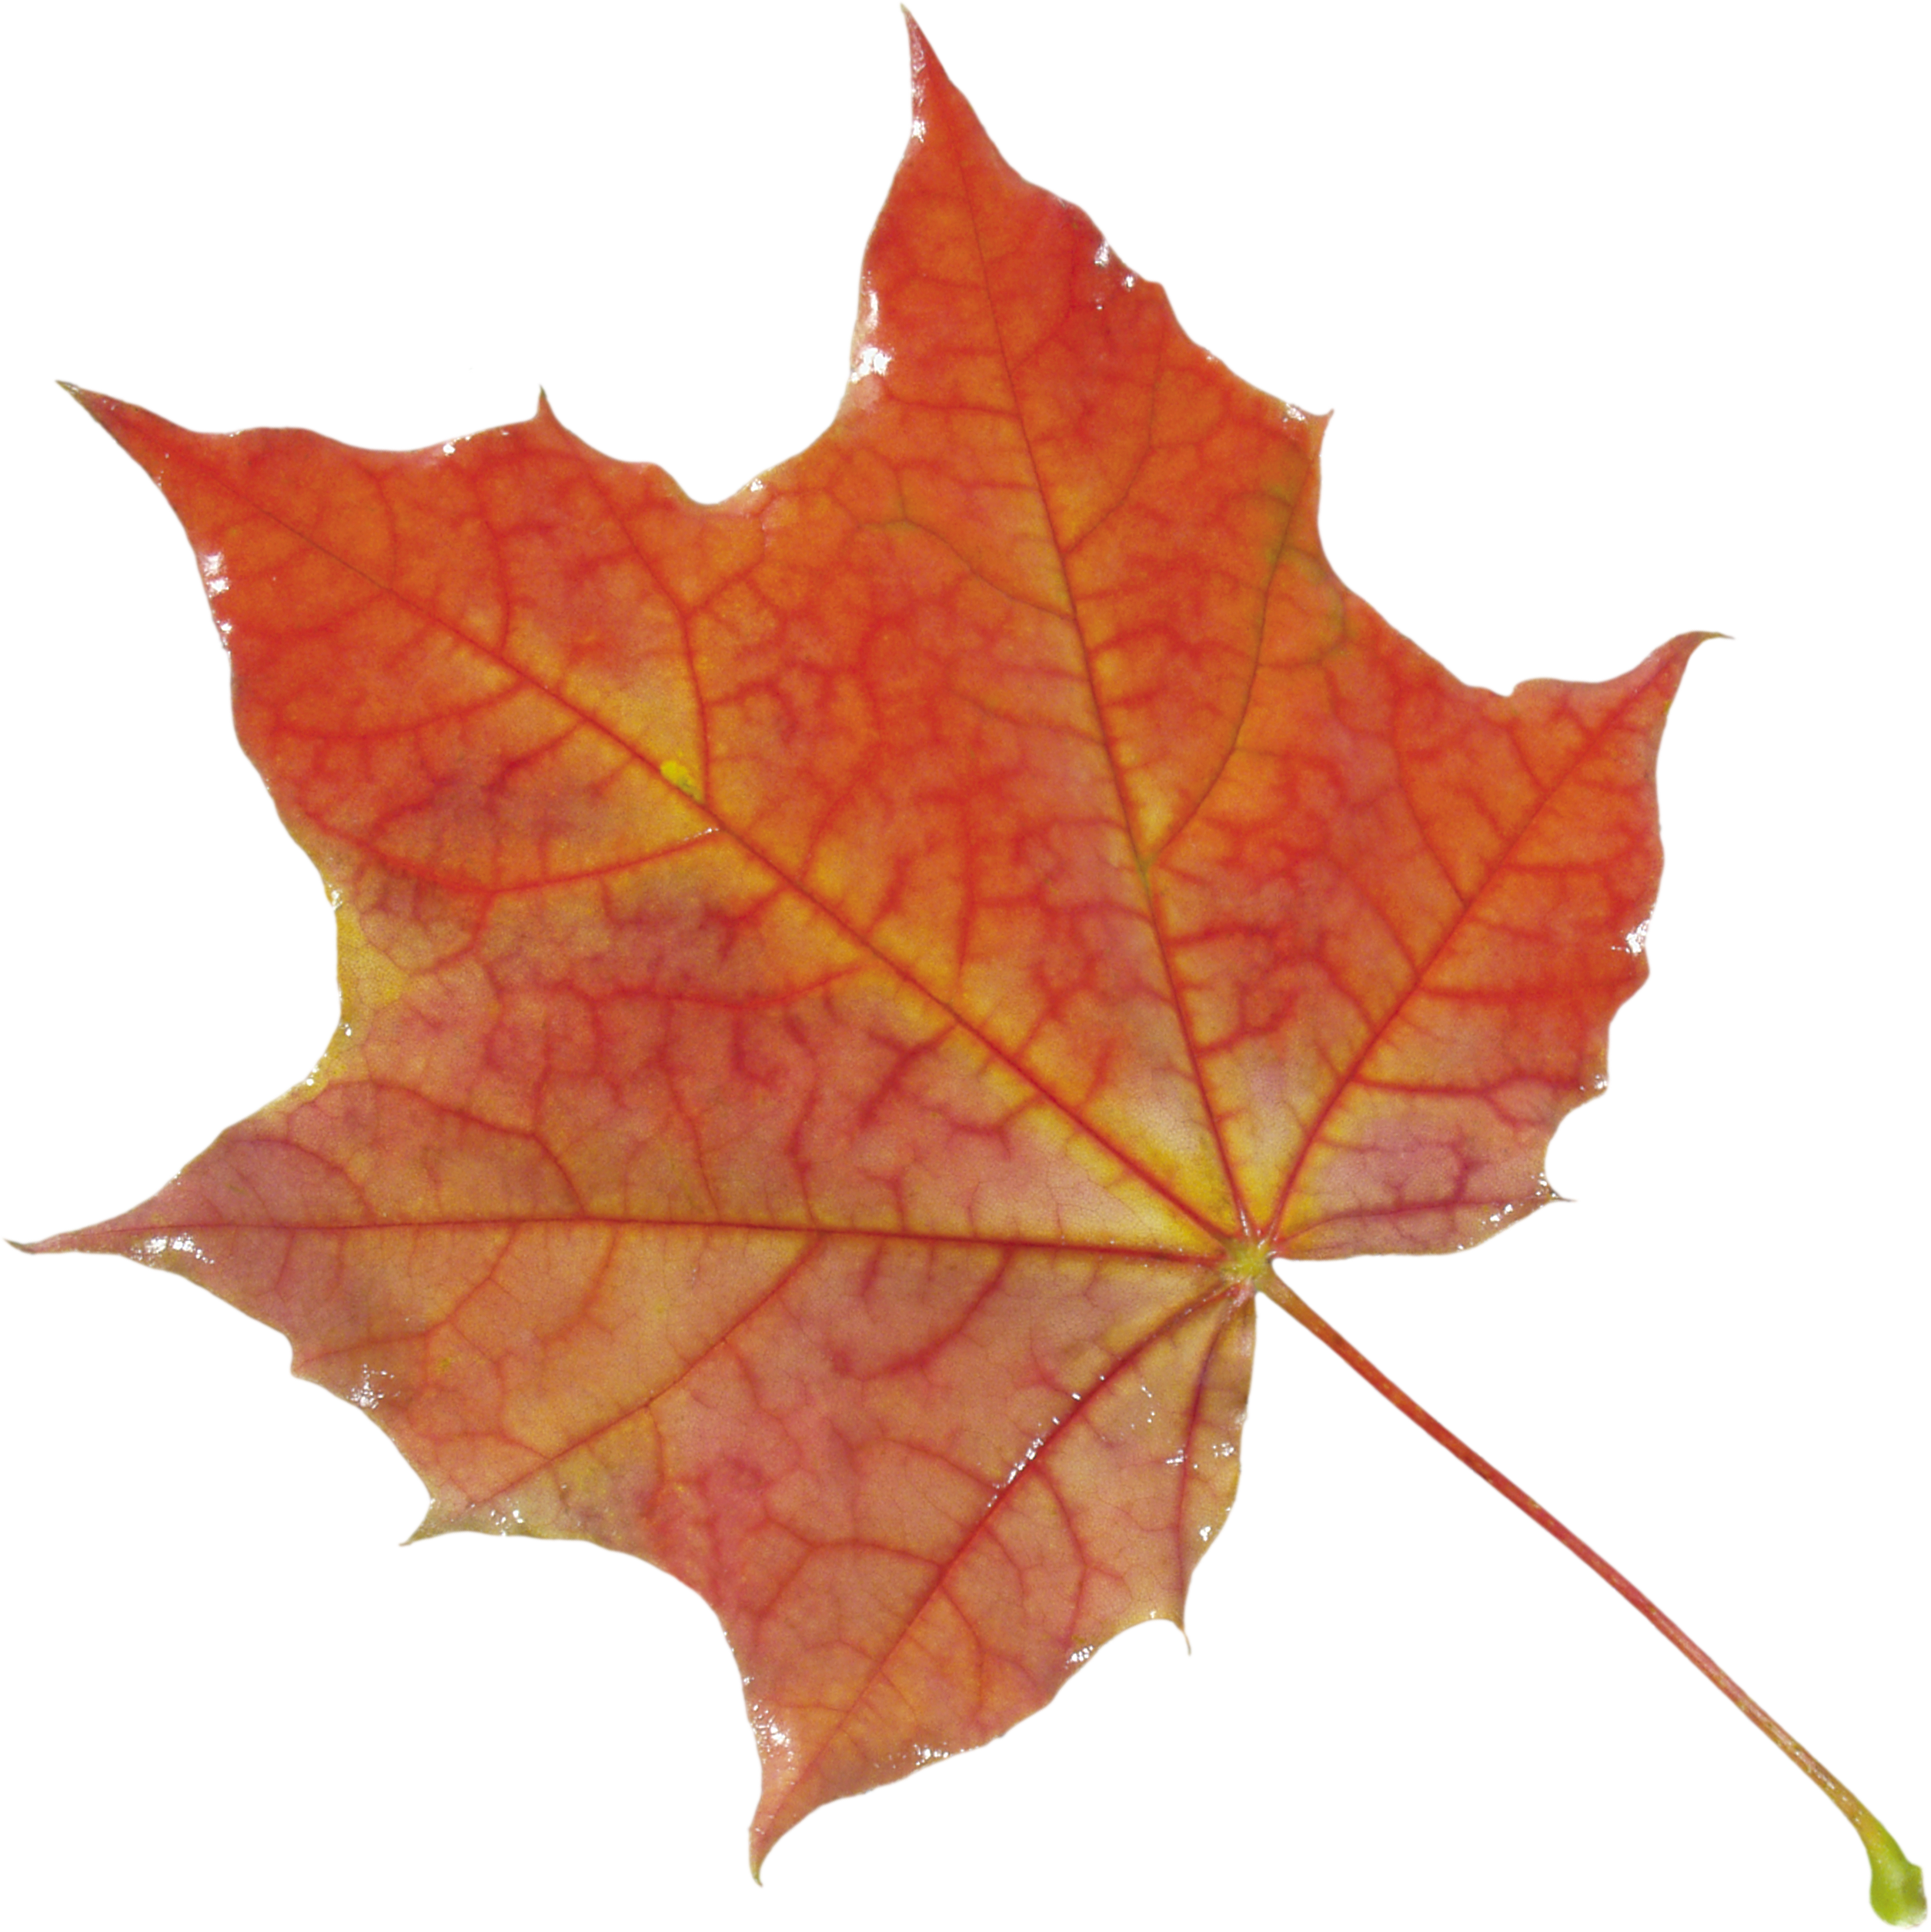 Autumn Leaves HD PNG - 96883